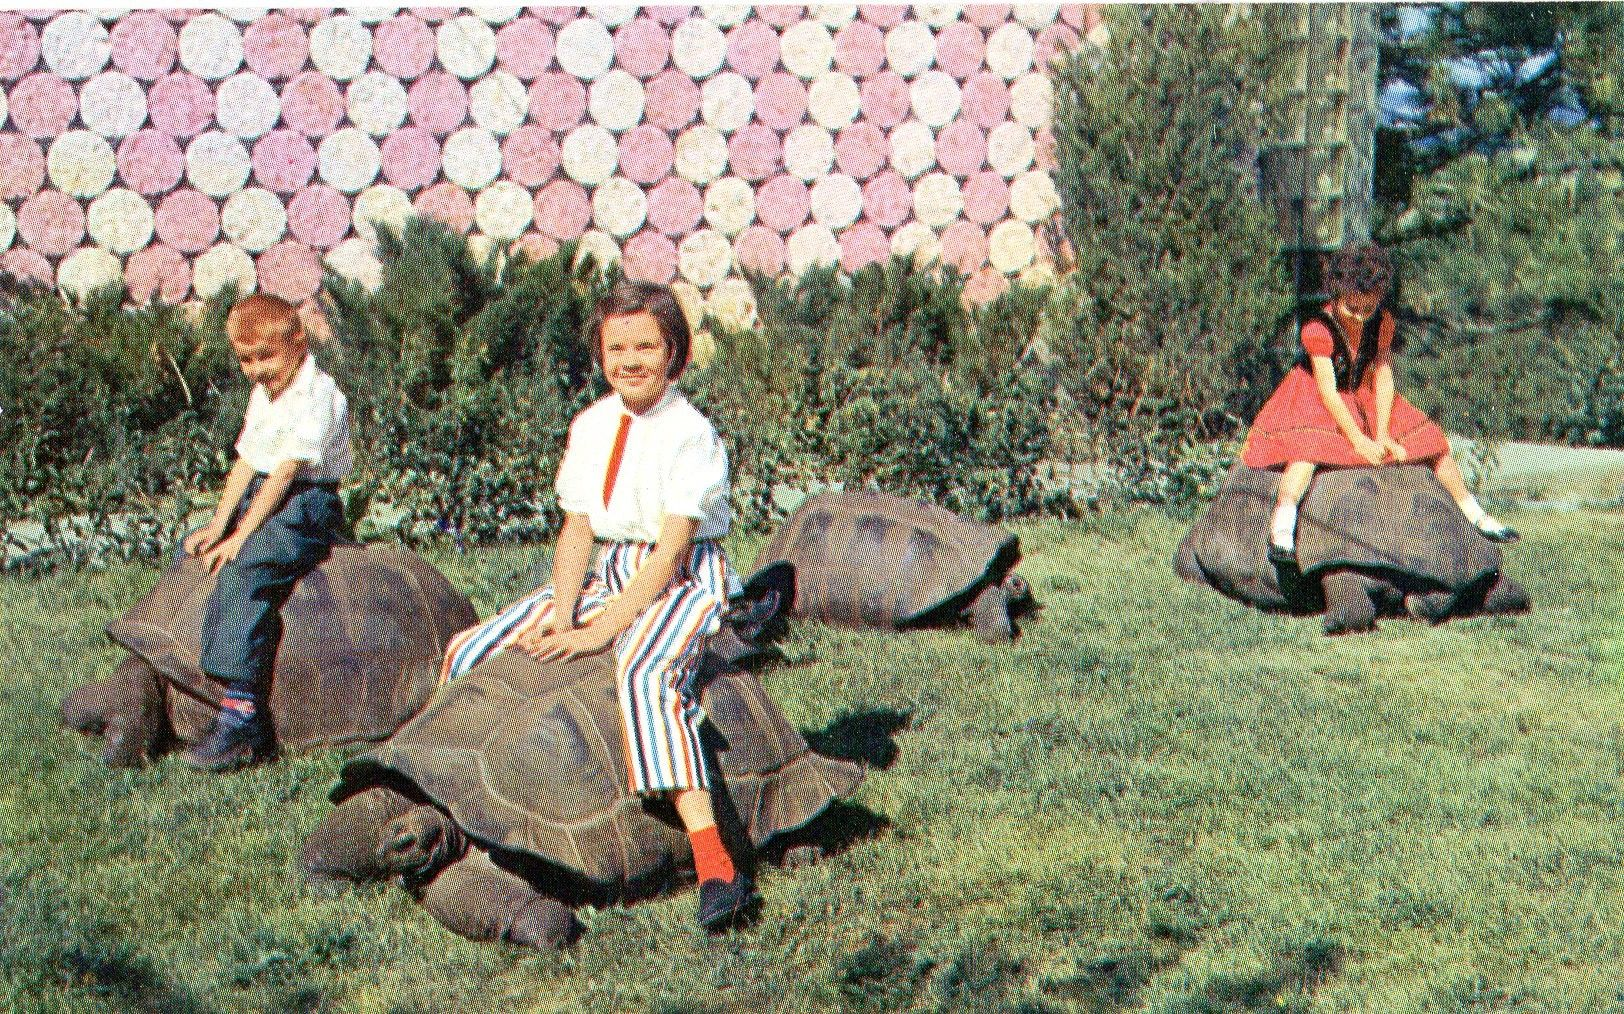 c3cfb098f6966819ce532b5c78aae95a - How Long Does Reptile Gardens Take